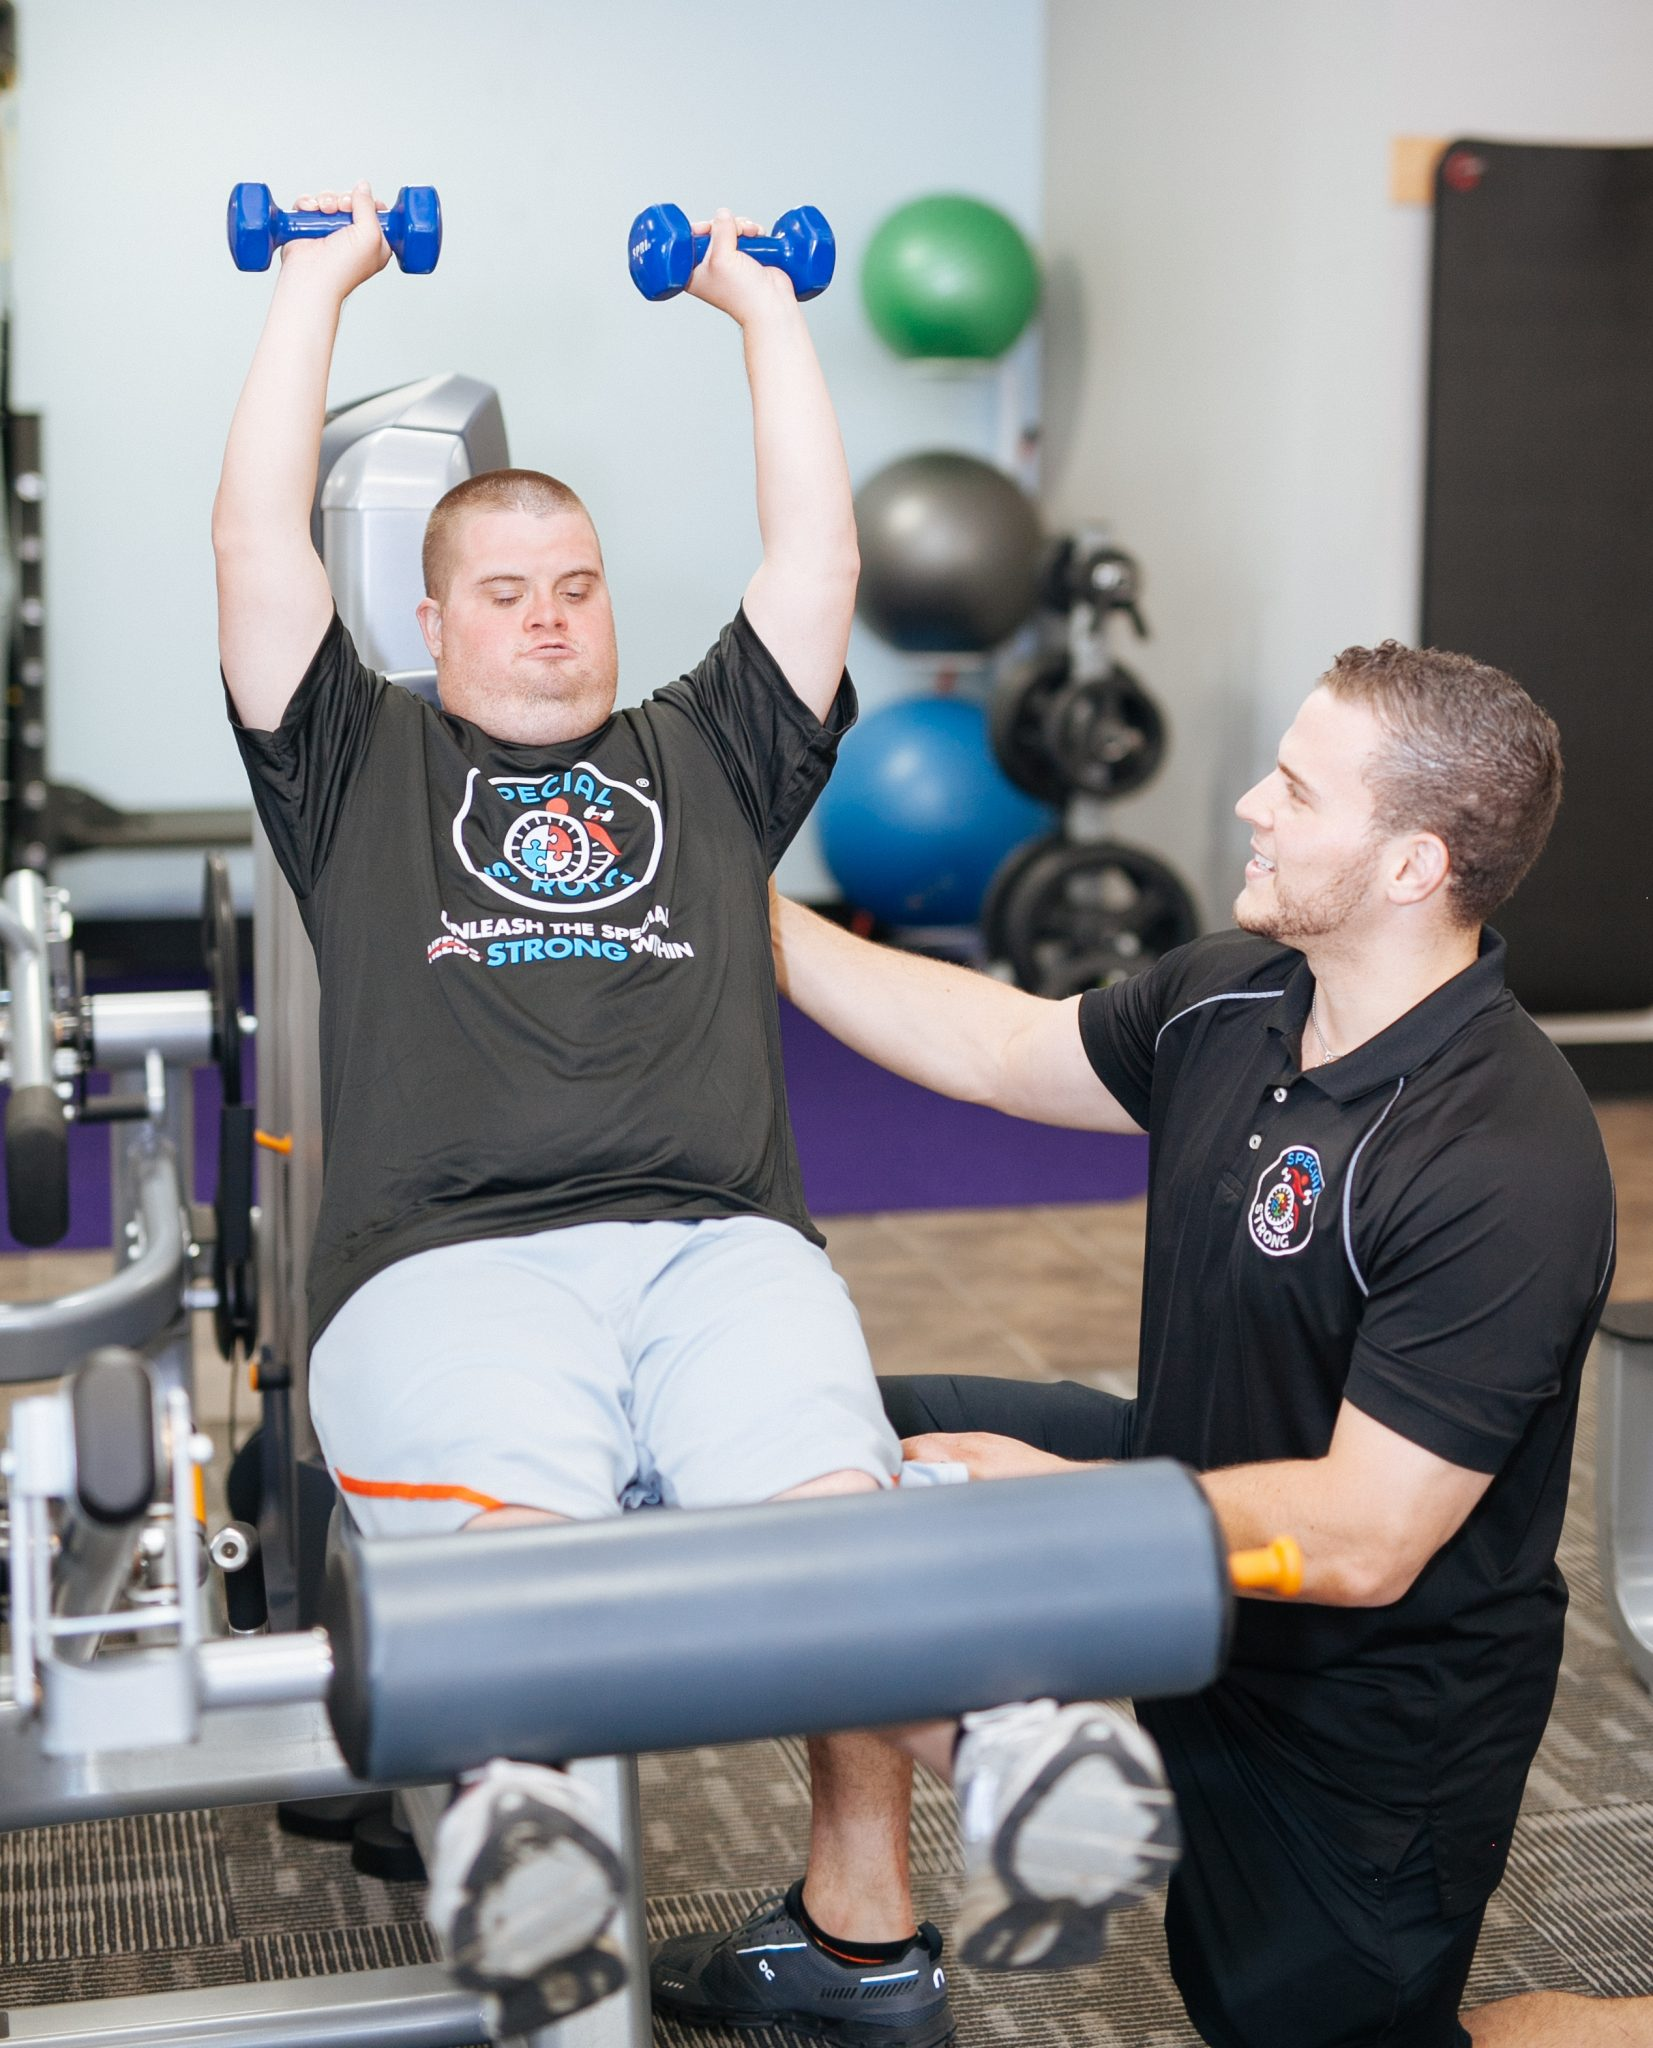 special strong adaptive fitness training downs